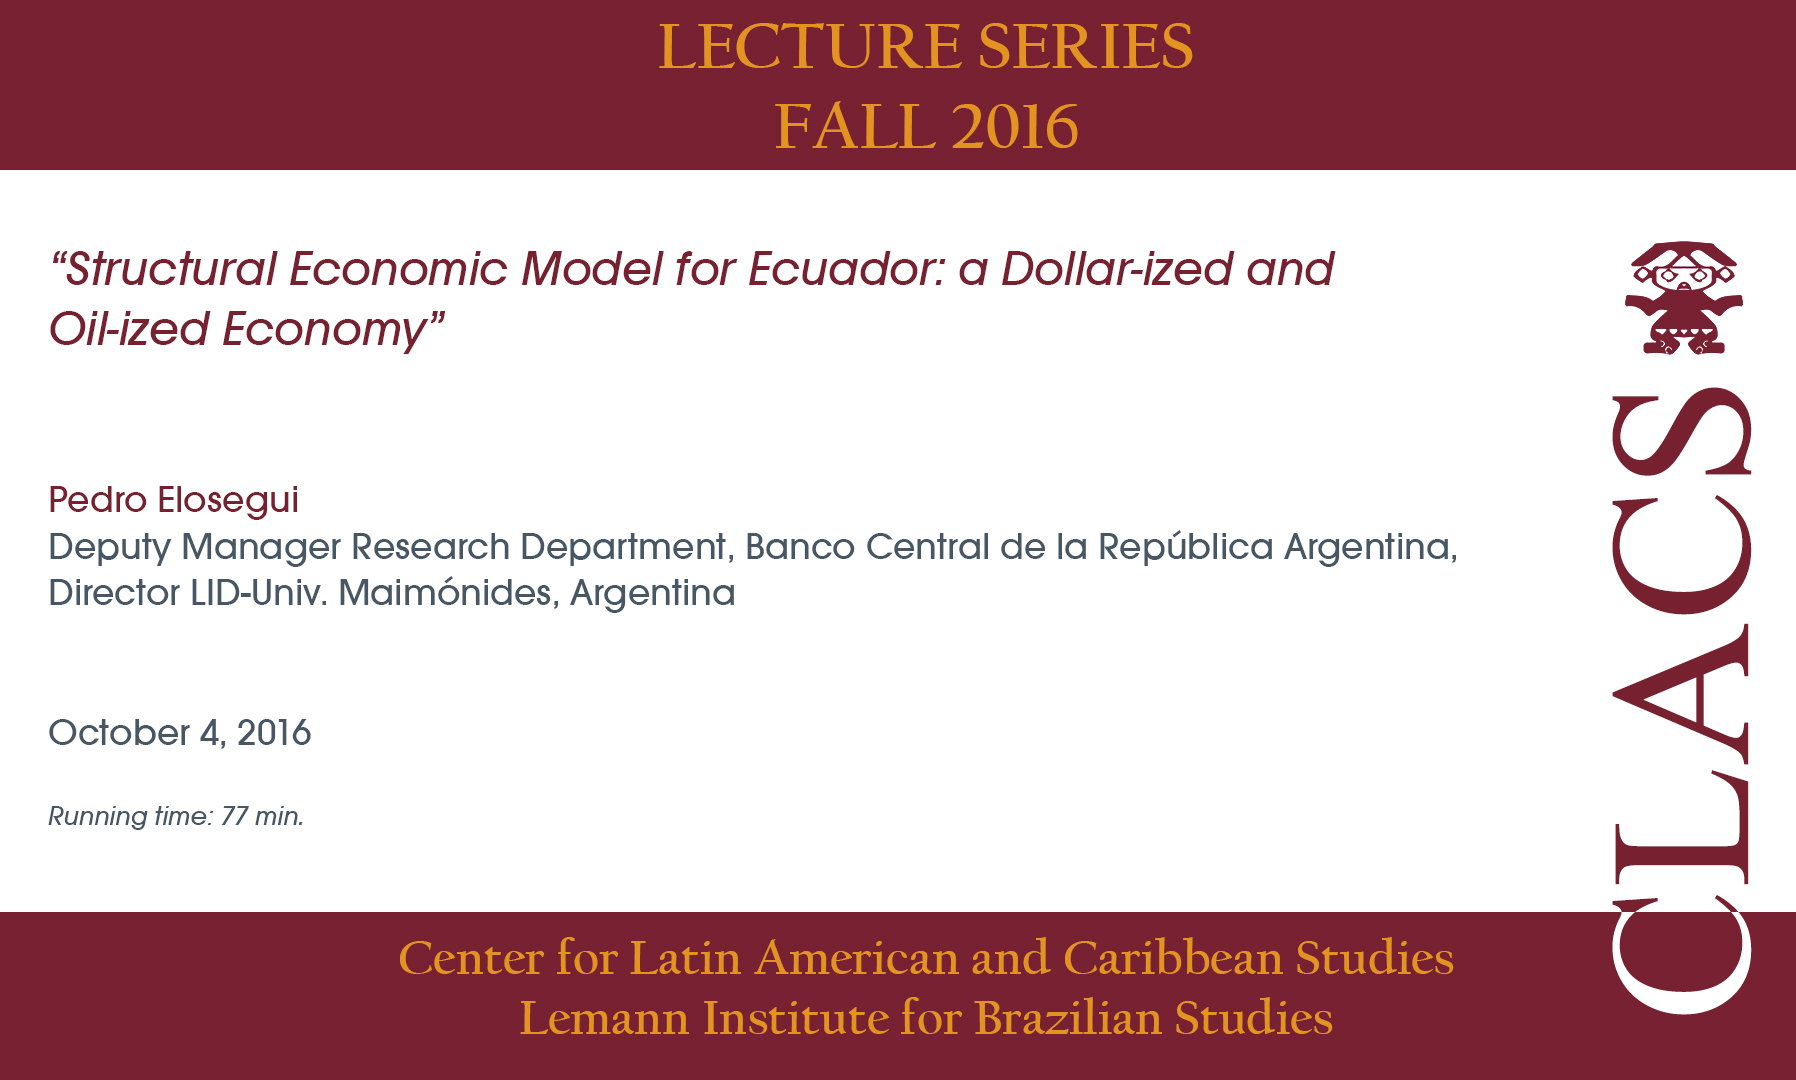 Structural Economic Model for Ecuador: a Dollar-ized and Oil-ized Economy